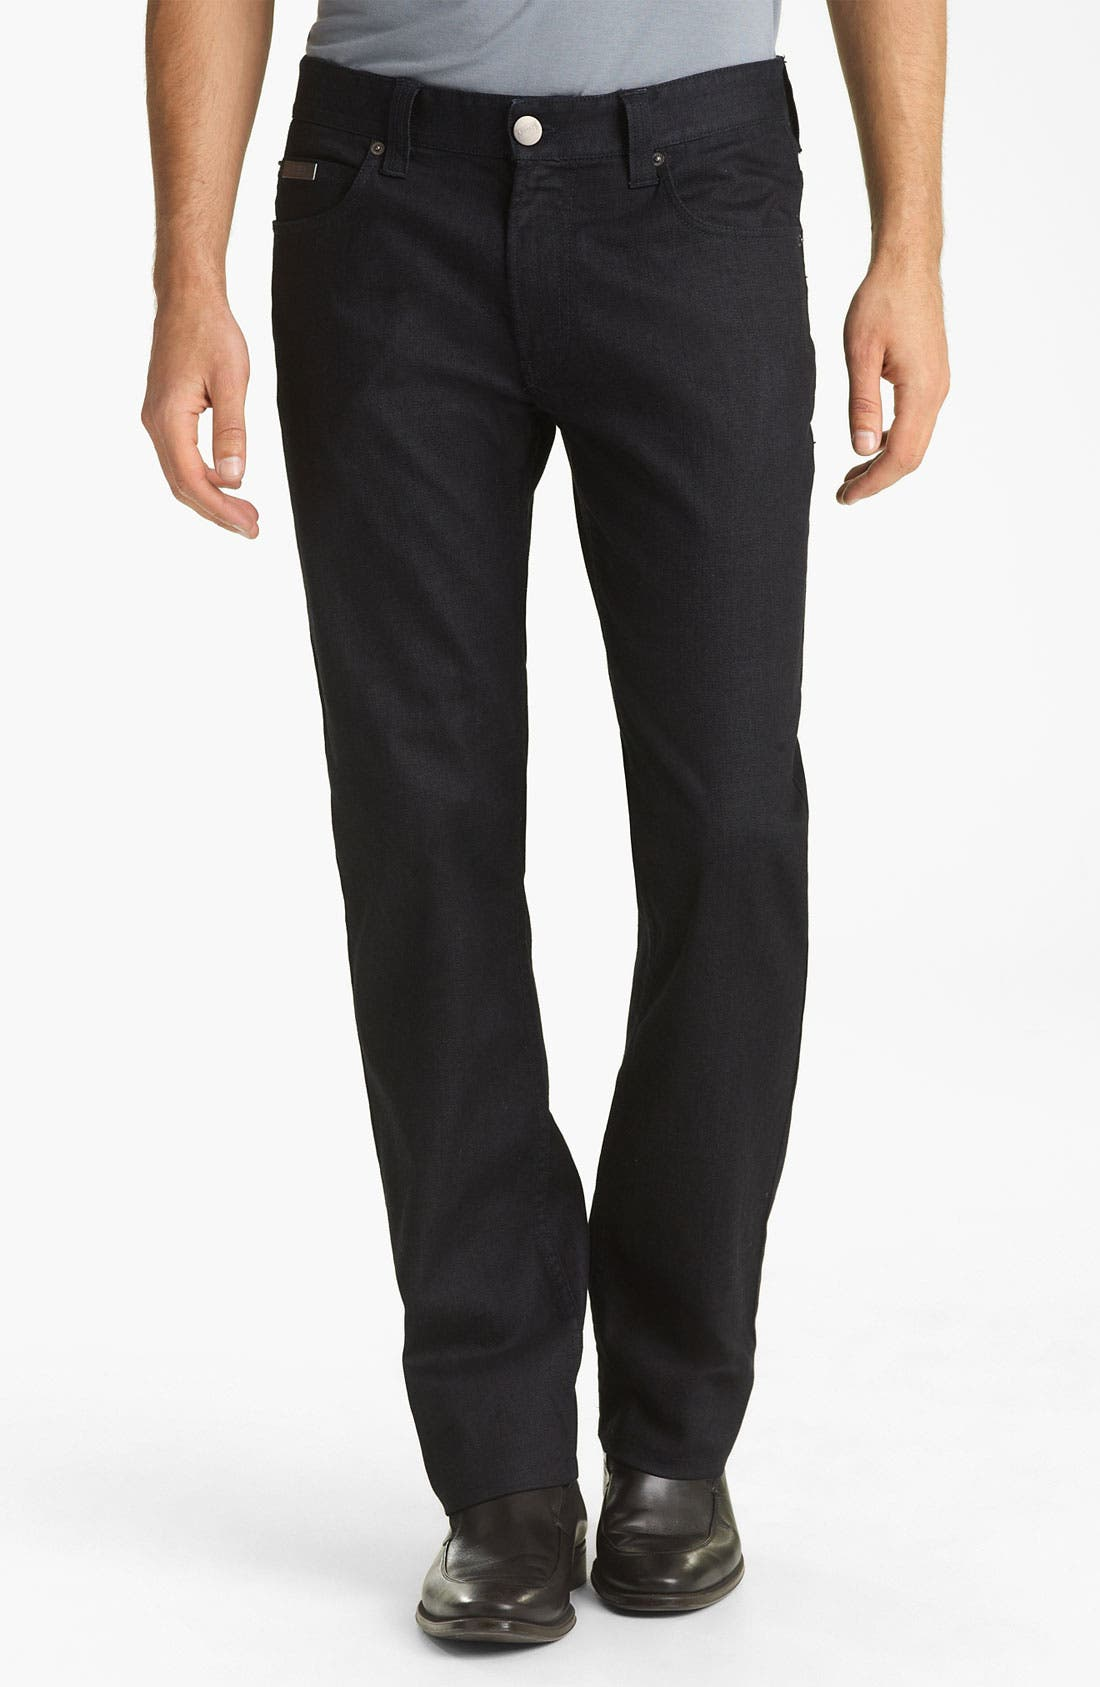 Alternate Image 1 Selected - Armani Collezioni Slim Straight Leg Jeans (Indigo Dark Rinse)